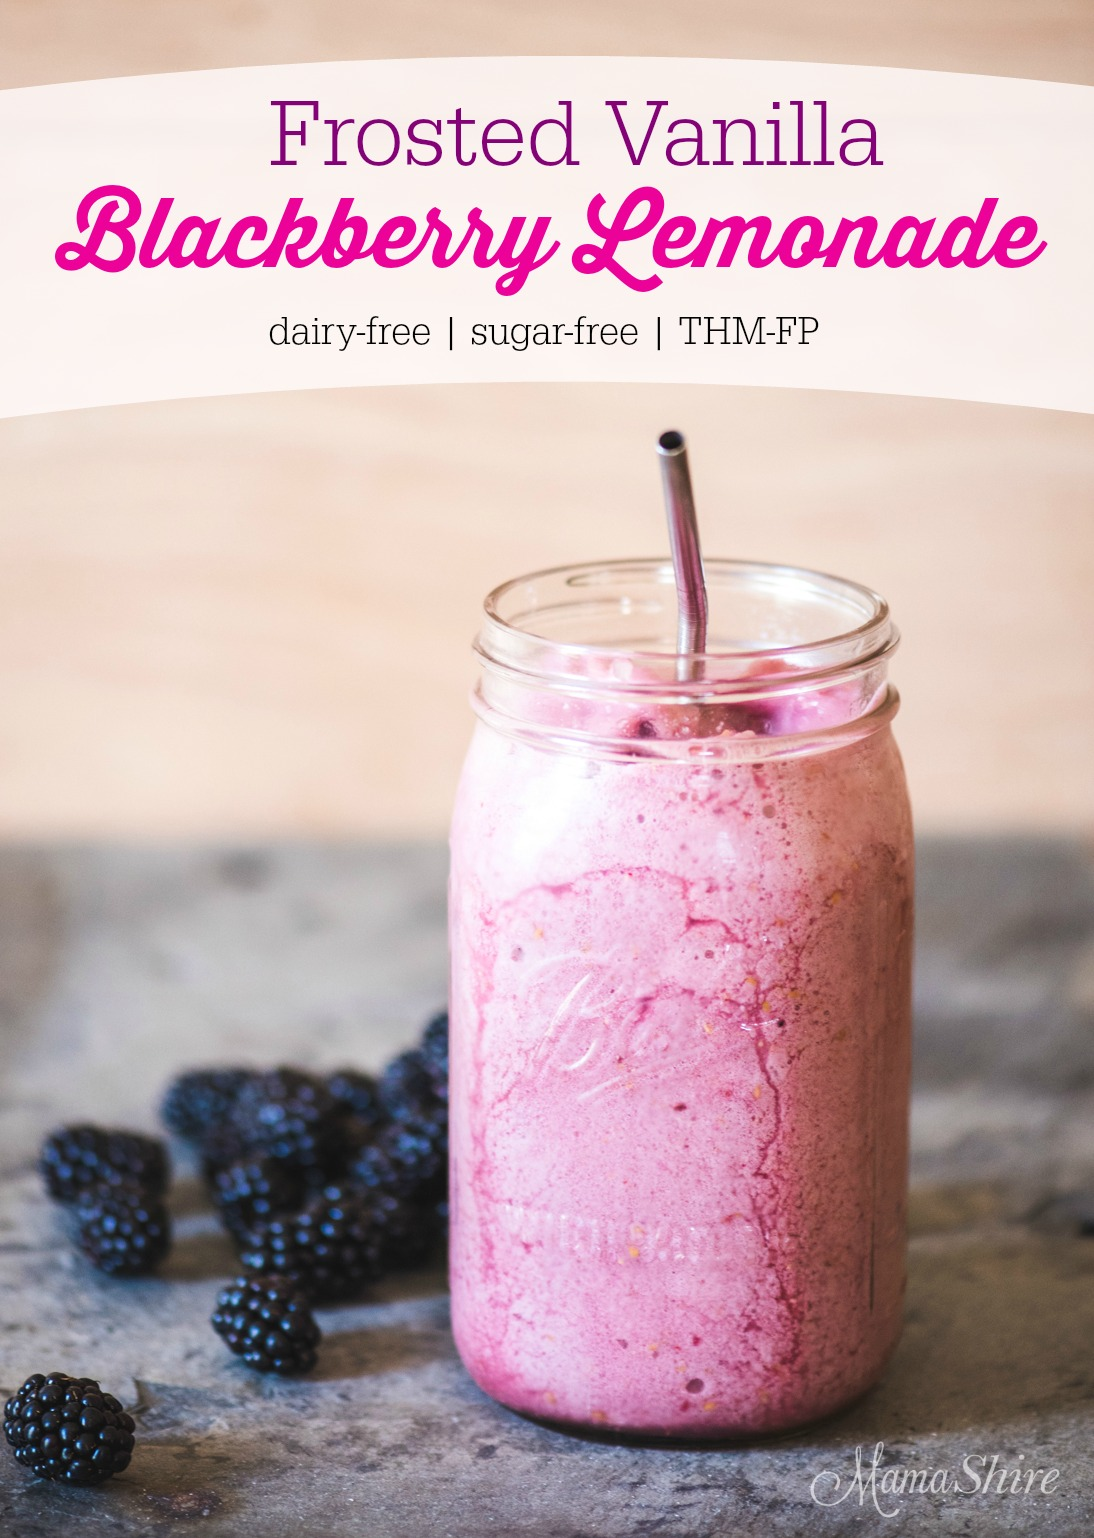 Frosted Vanilla Blackberry Lemonade Dairy-free, Sugar-free, Low-Carb, THM-FP